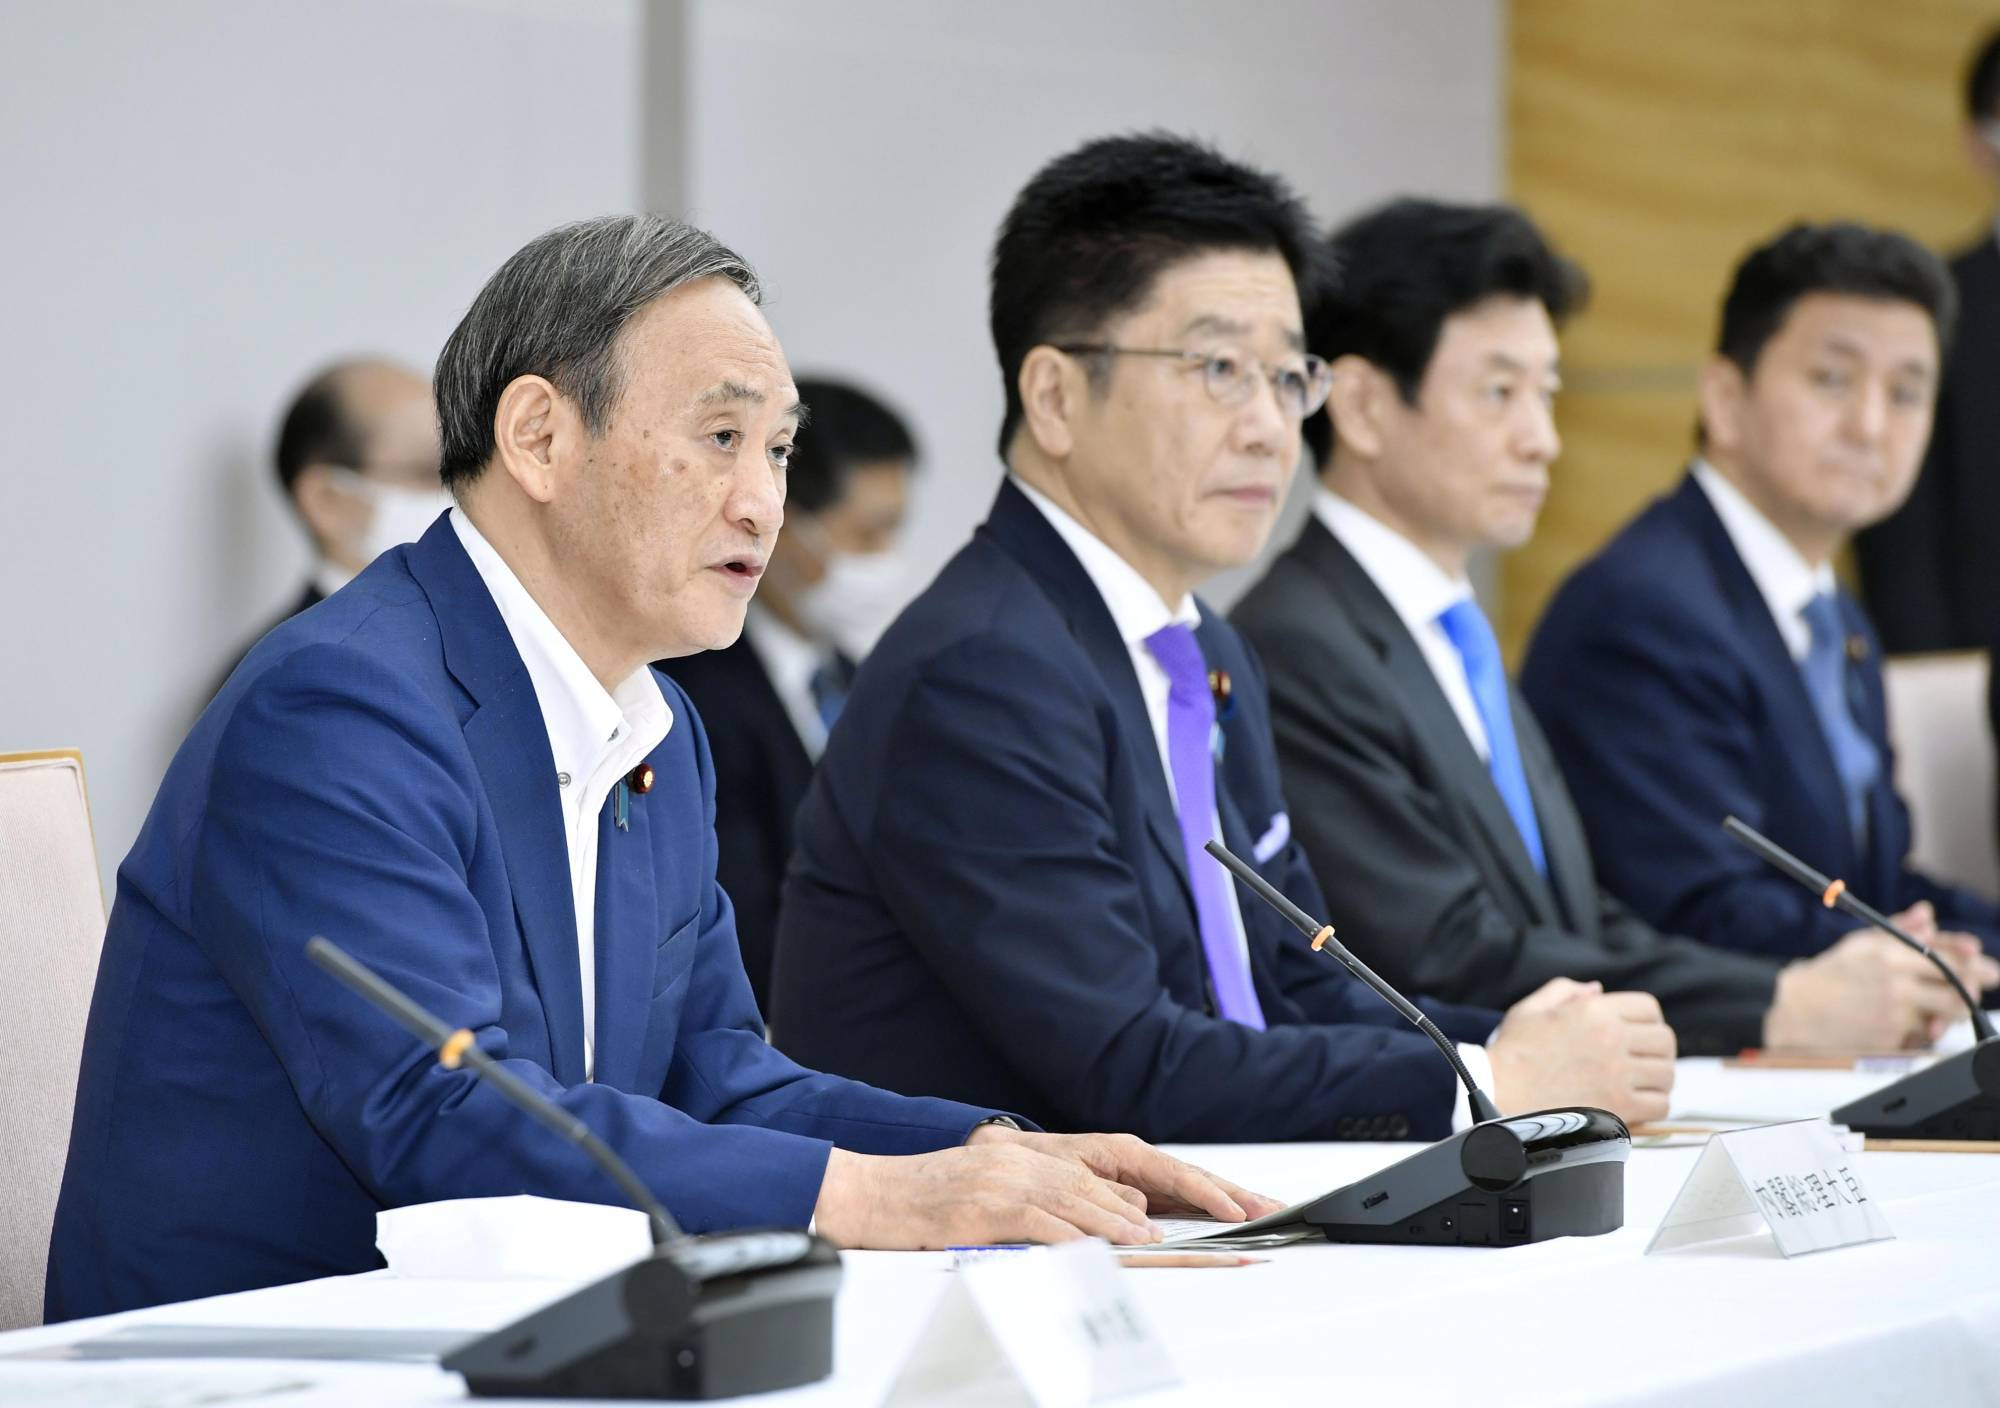 The power balance among government ministries and agencies is likely to change under the administration of Prime Minister Yoshihide Suga. | KYODO